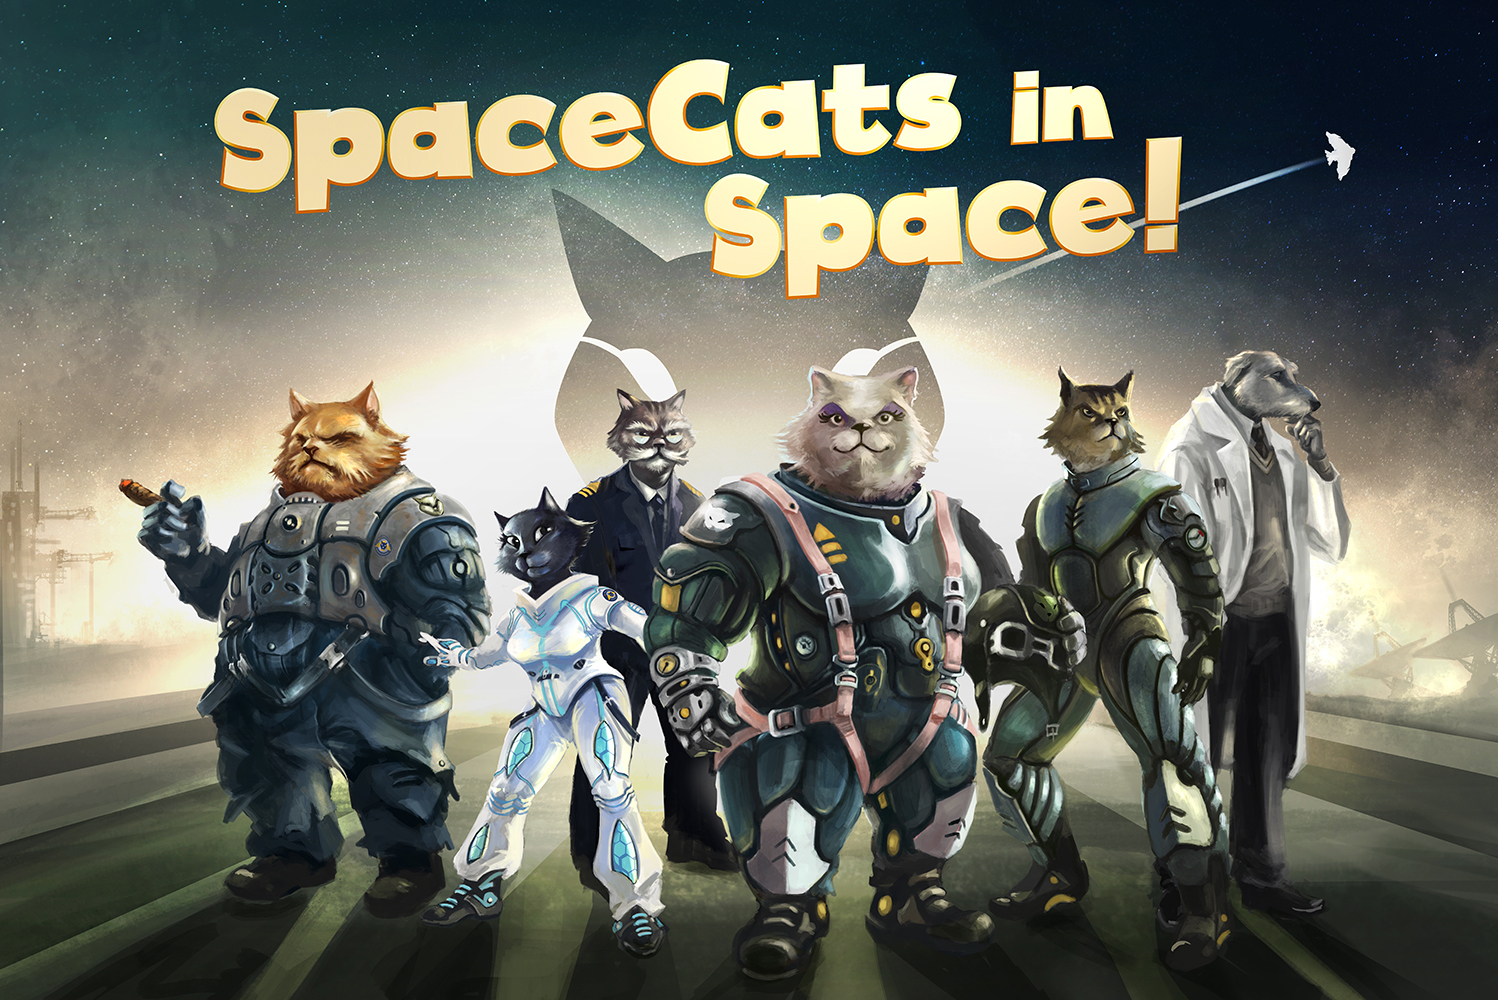 Space Cats In Space!